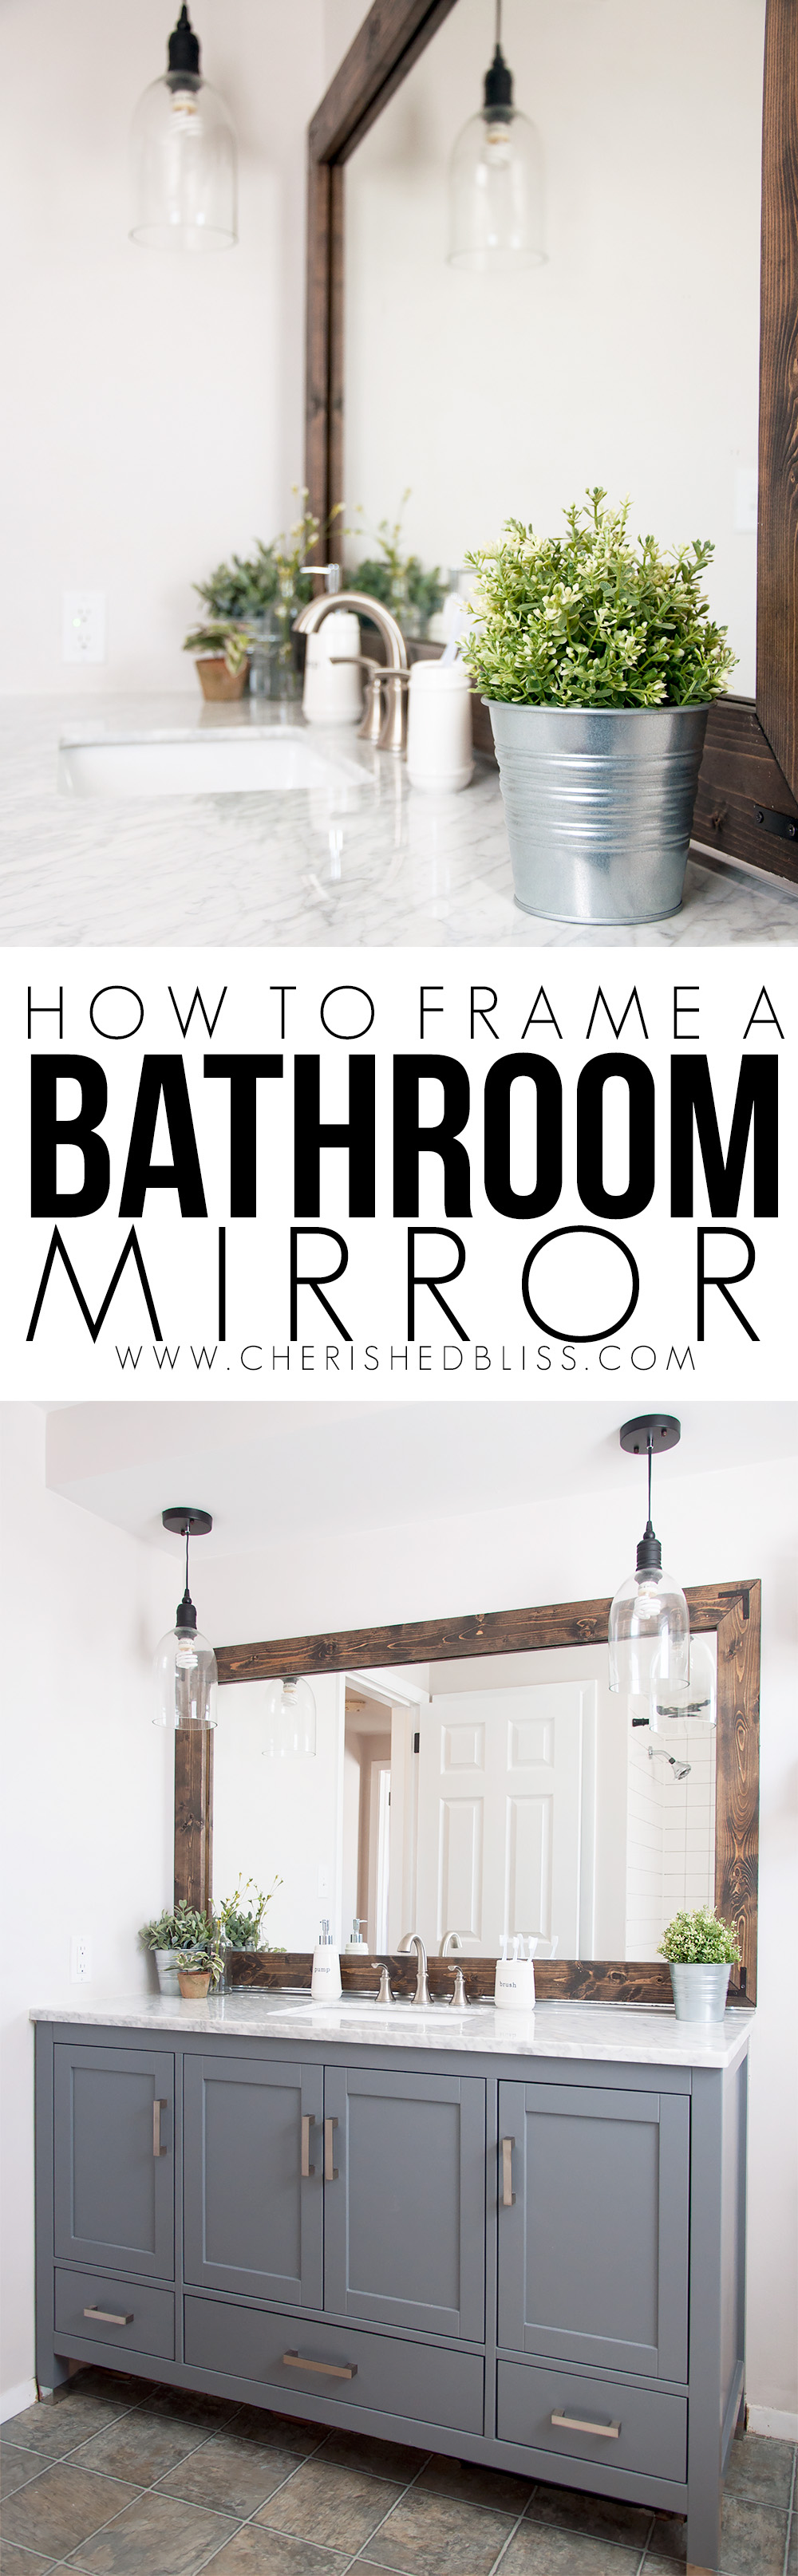 How To Frame A Bathroom Mirror Cute Diy Projects